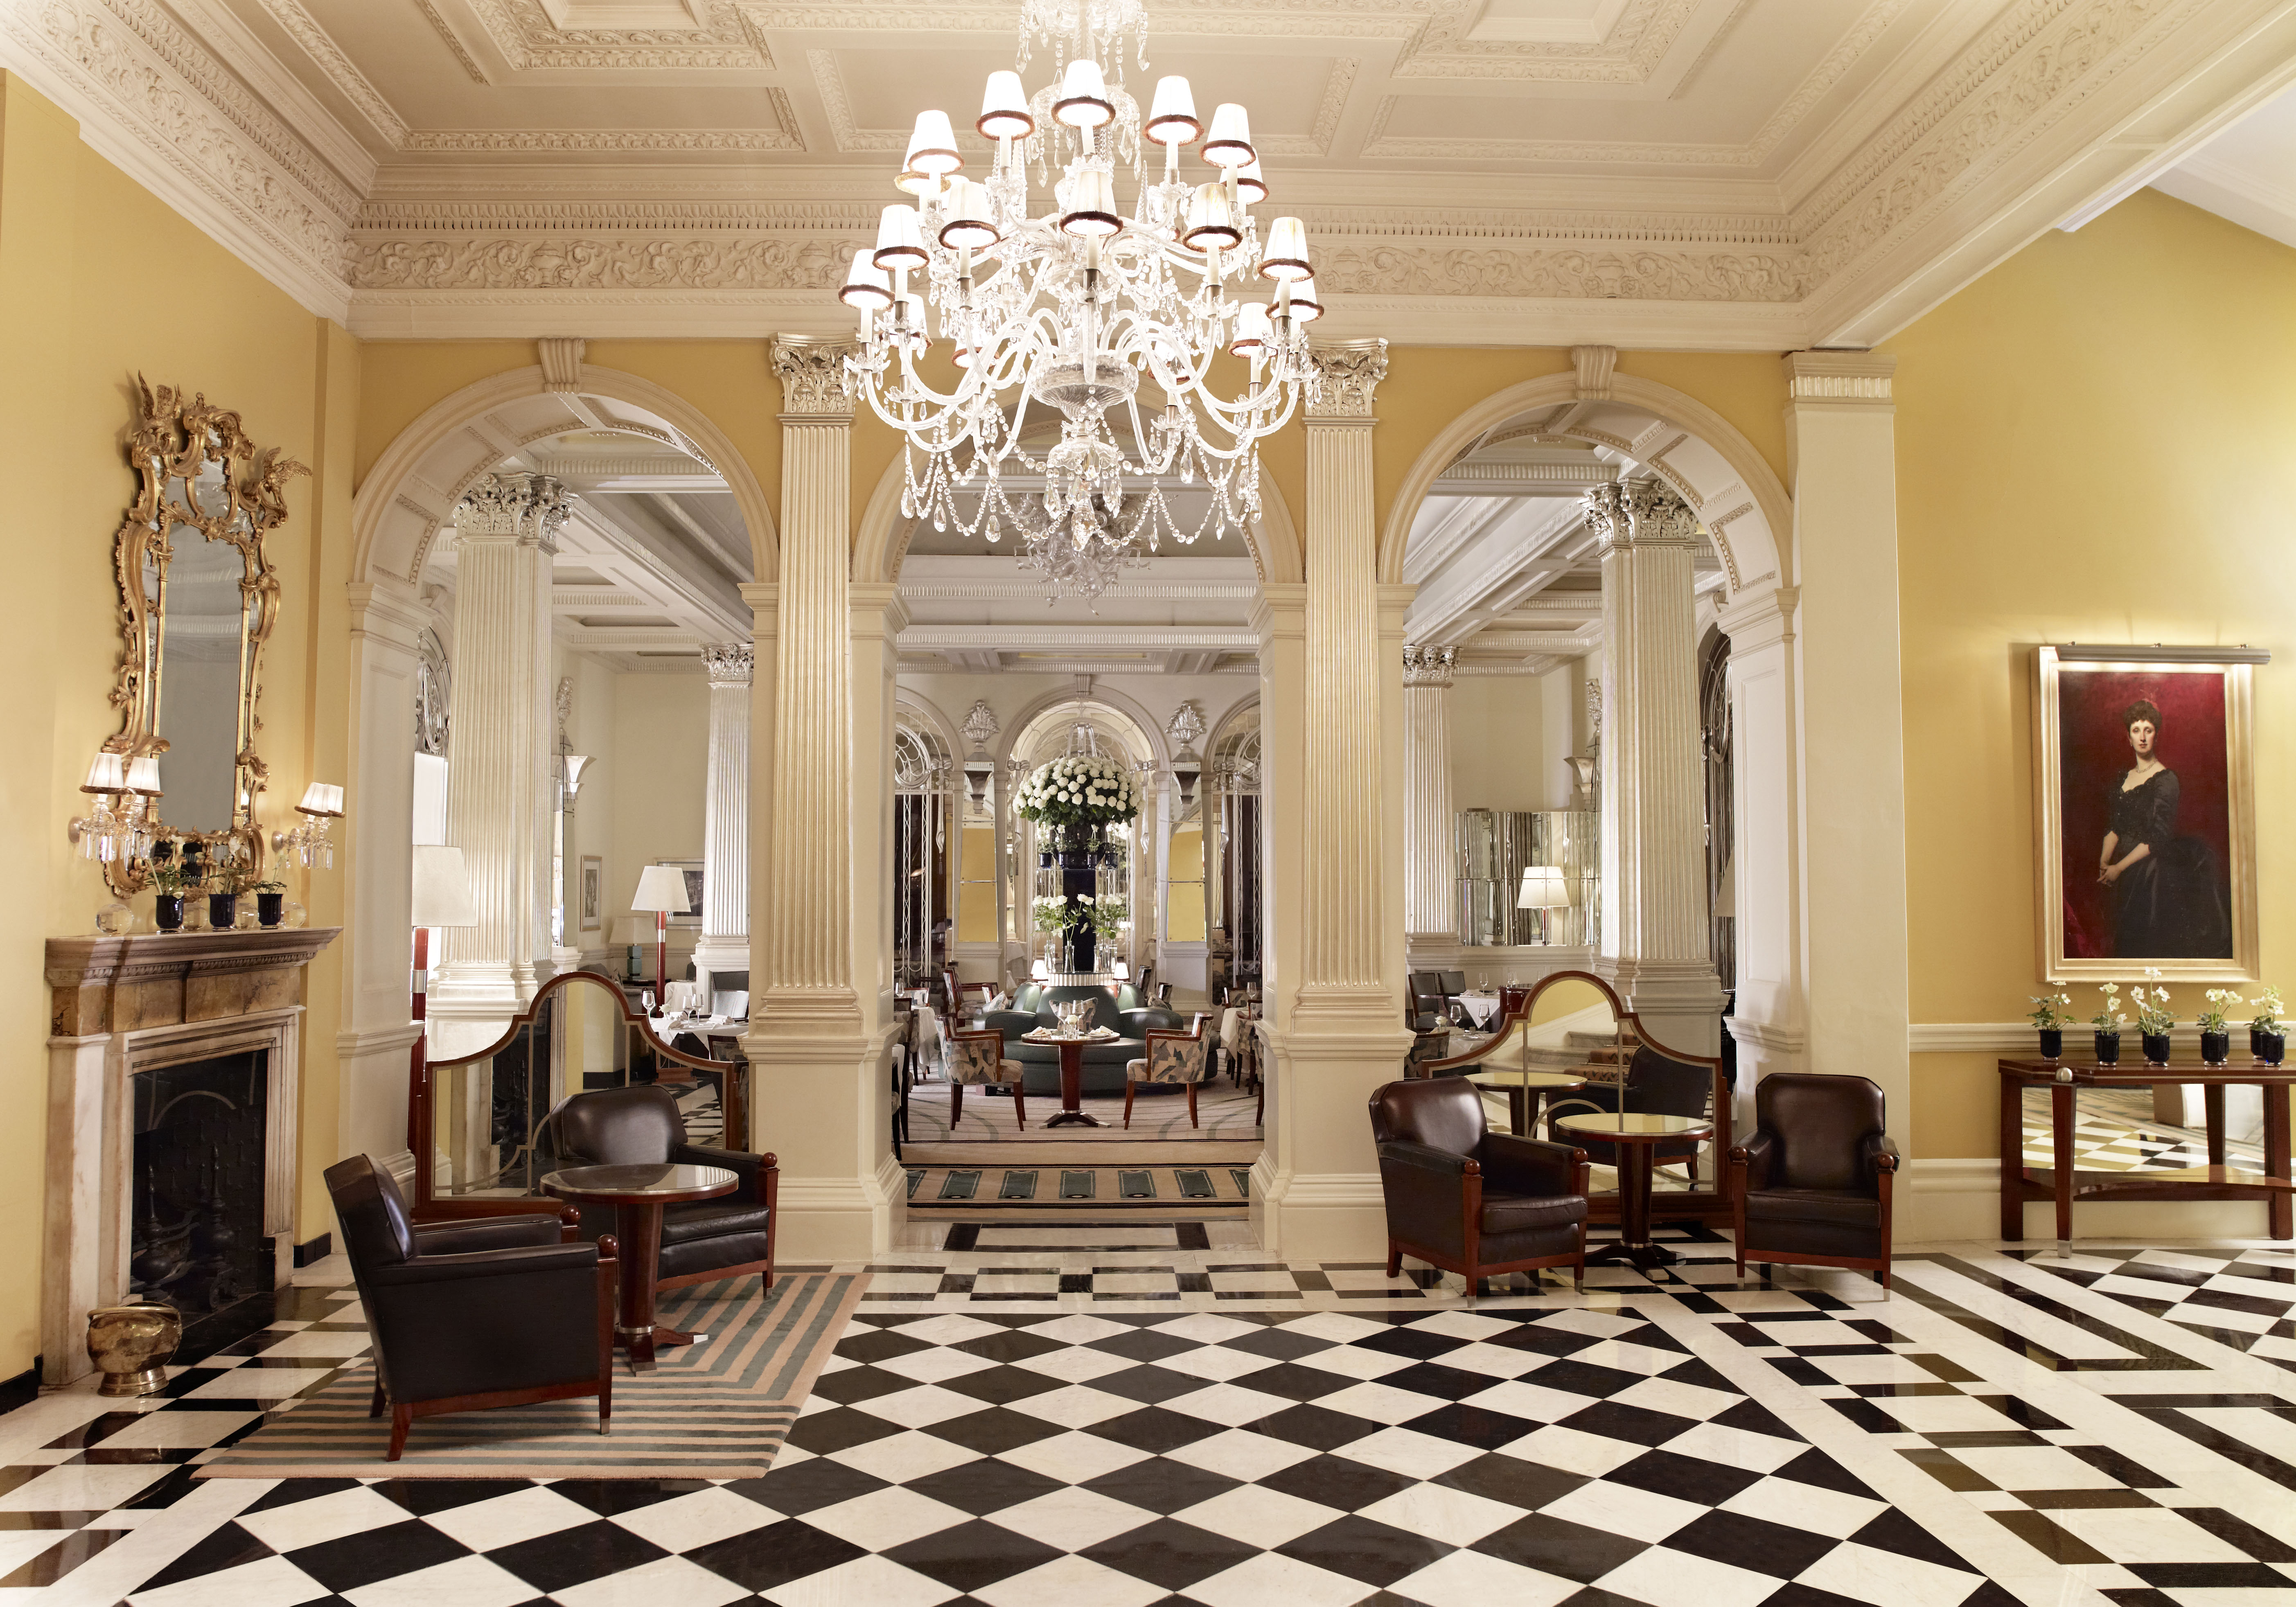 Hotel Imperial Londres